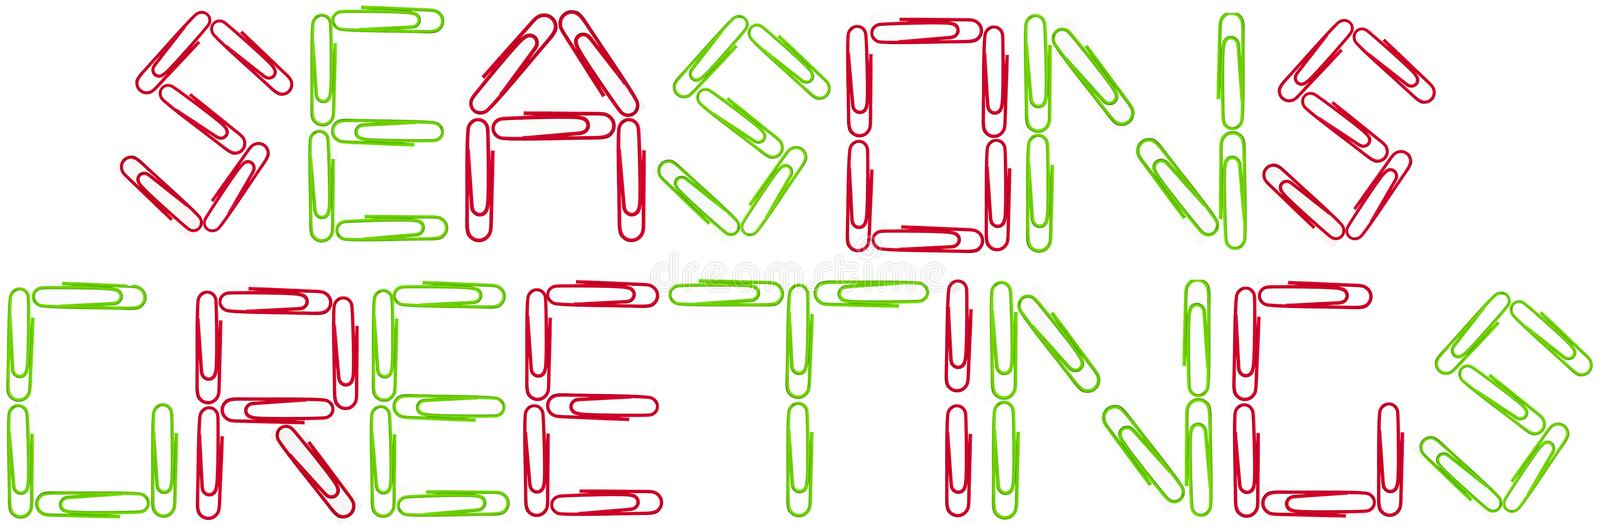 Download Seanson's Greetings Red And Green Paper Clips Stock Image - Image: 11416233